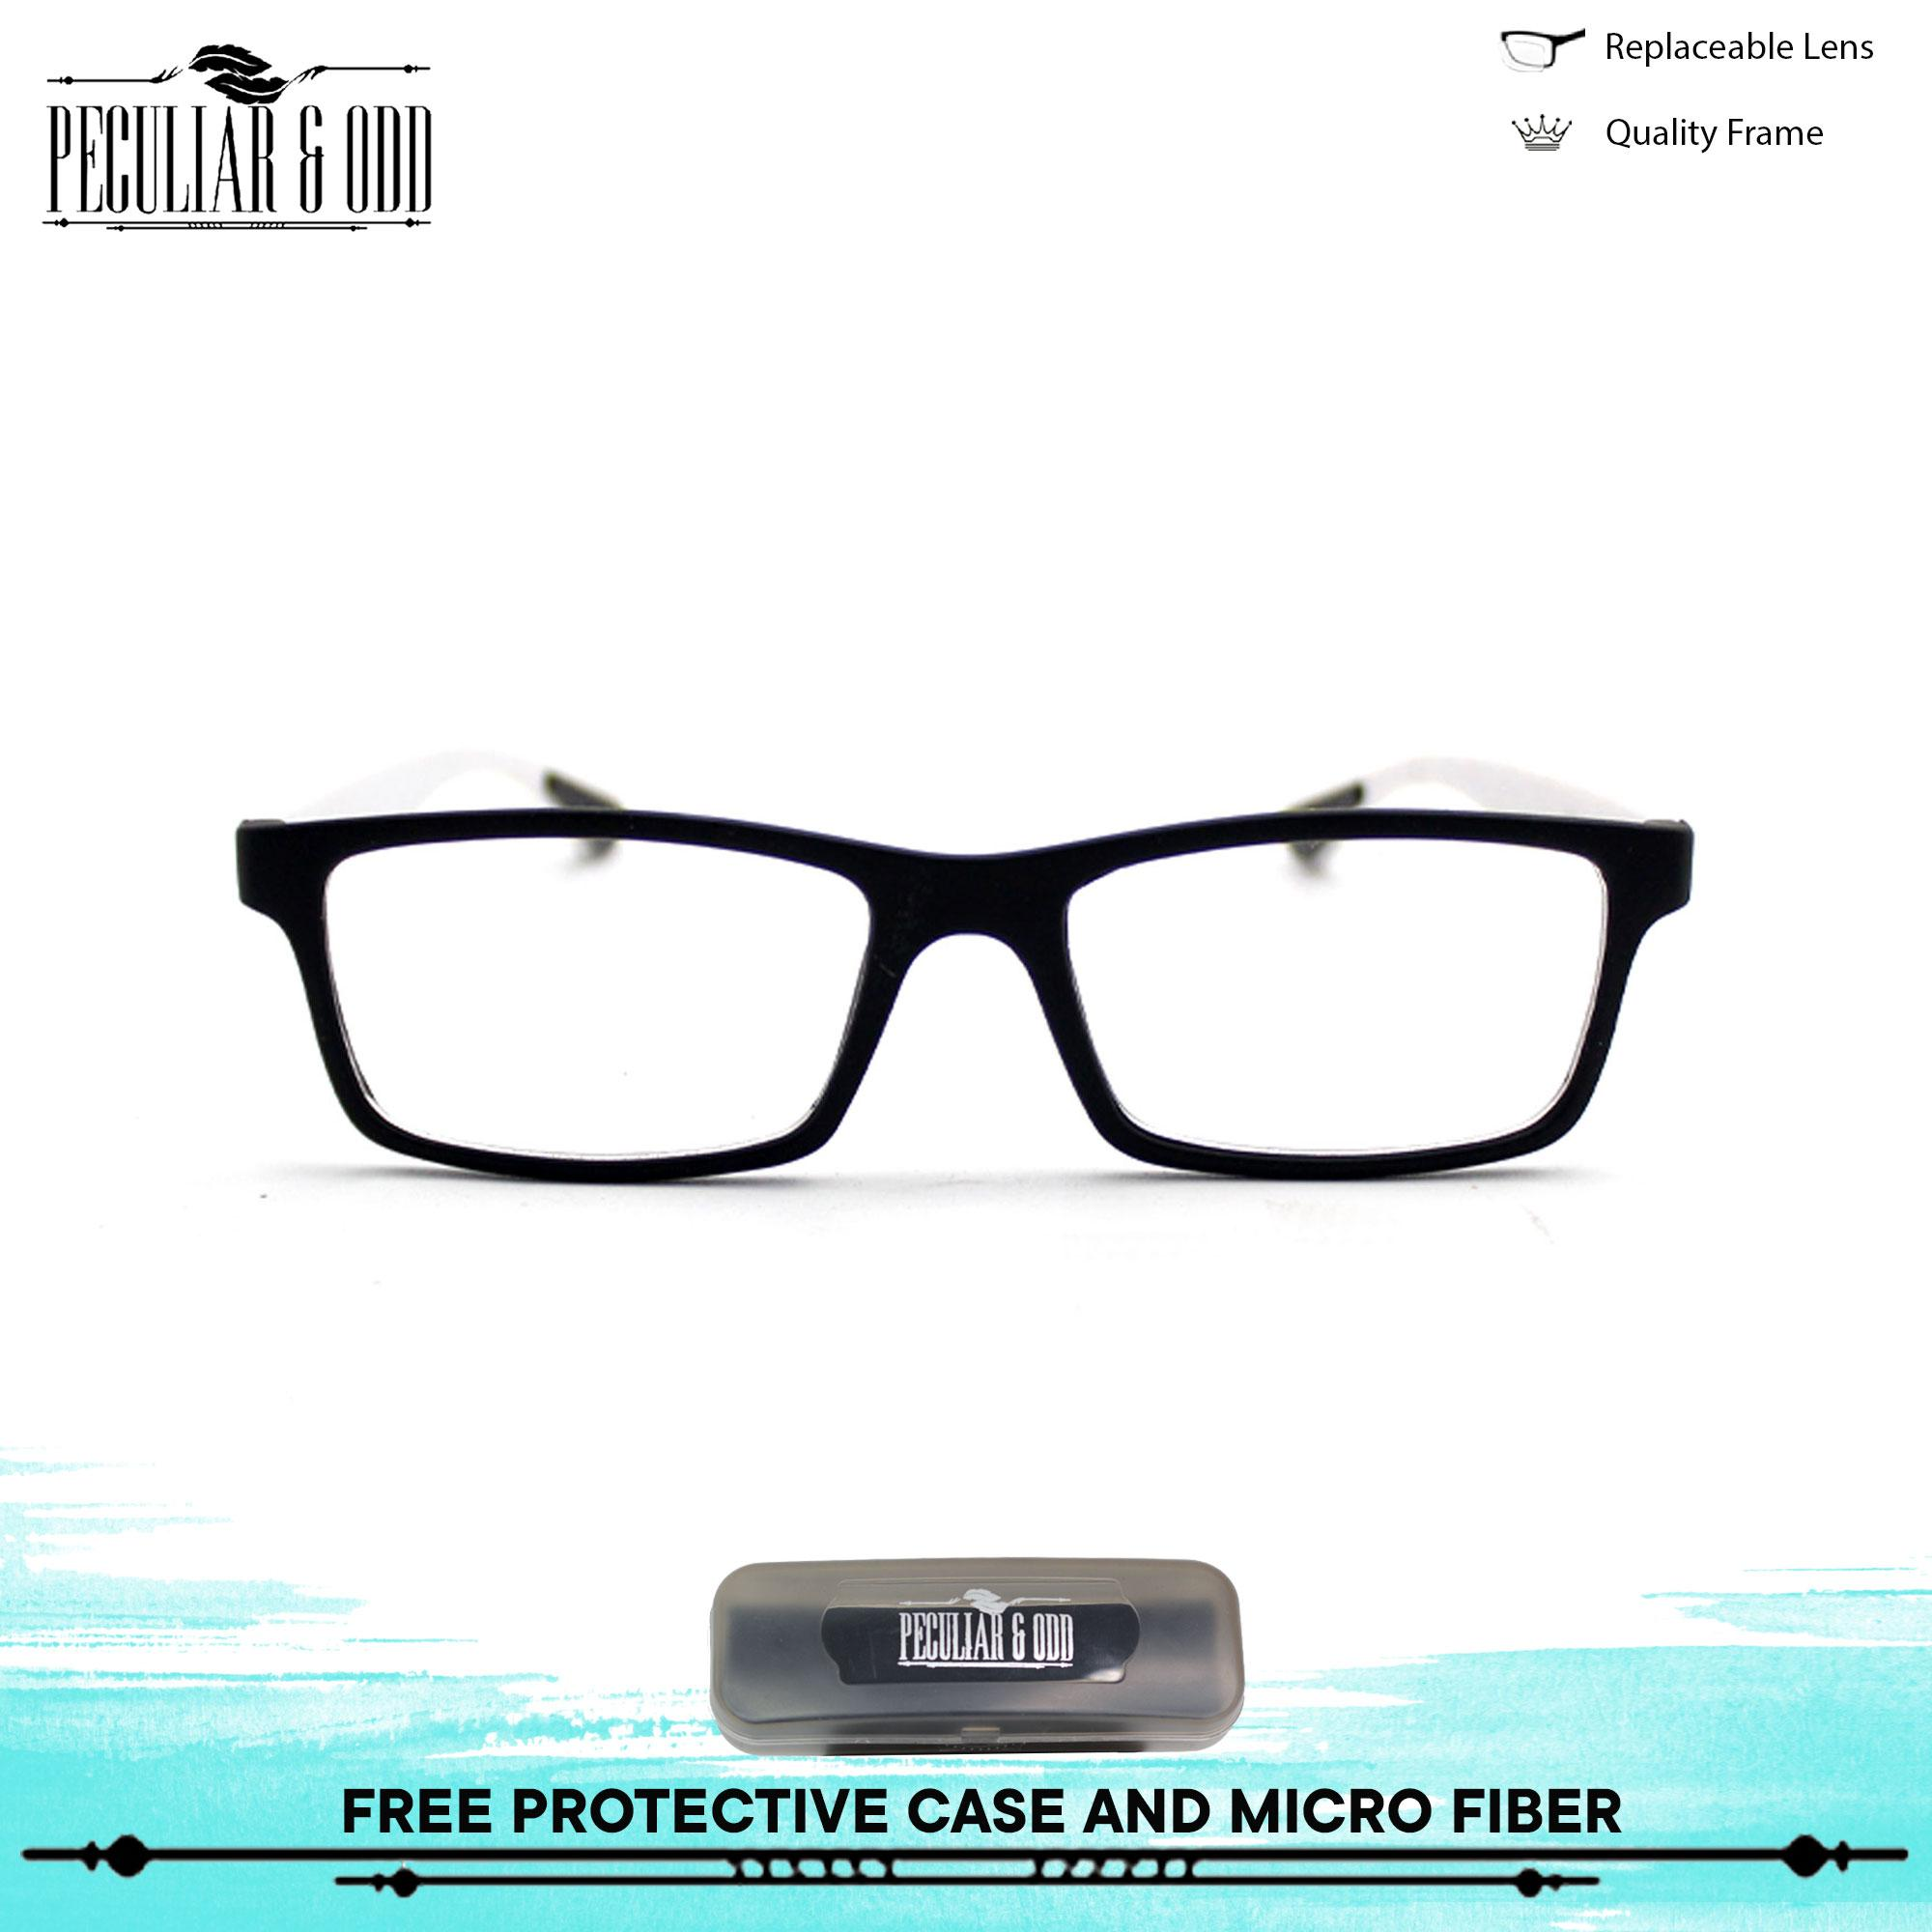 c6a6f8c62fb1 Optical Rubberized Frame XQY7926 BlackWhite Rectangular Computer Eyeglasses  Anti Glare Replaceable Lens with Rubberized Template Stopper Unisex